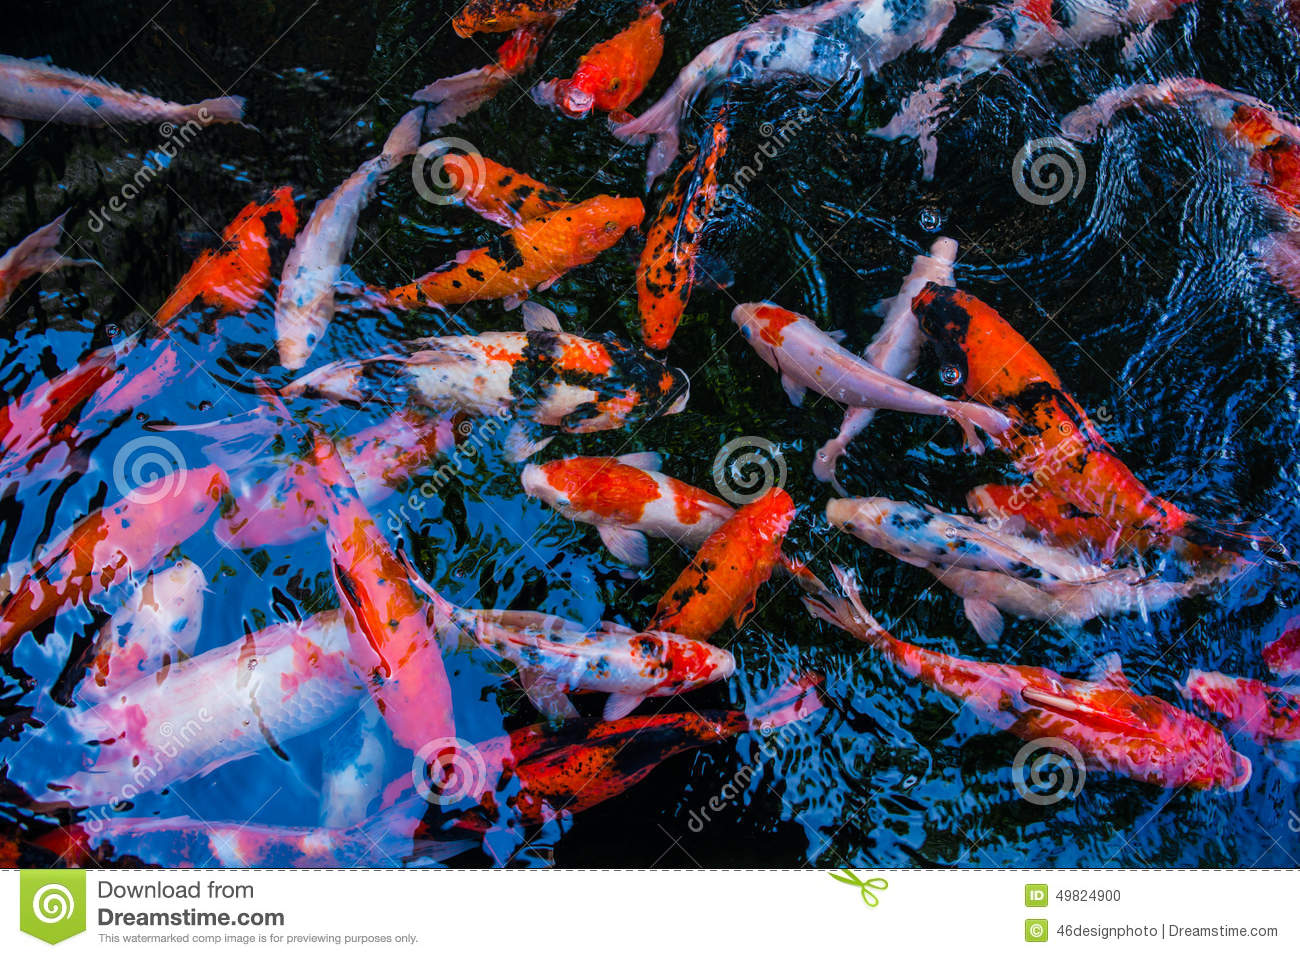 Pescados de koi en los estanques de peces foto de archivo for Peces y estanques